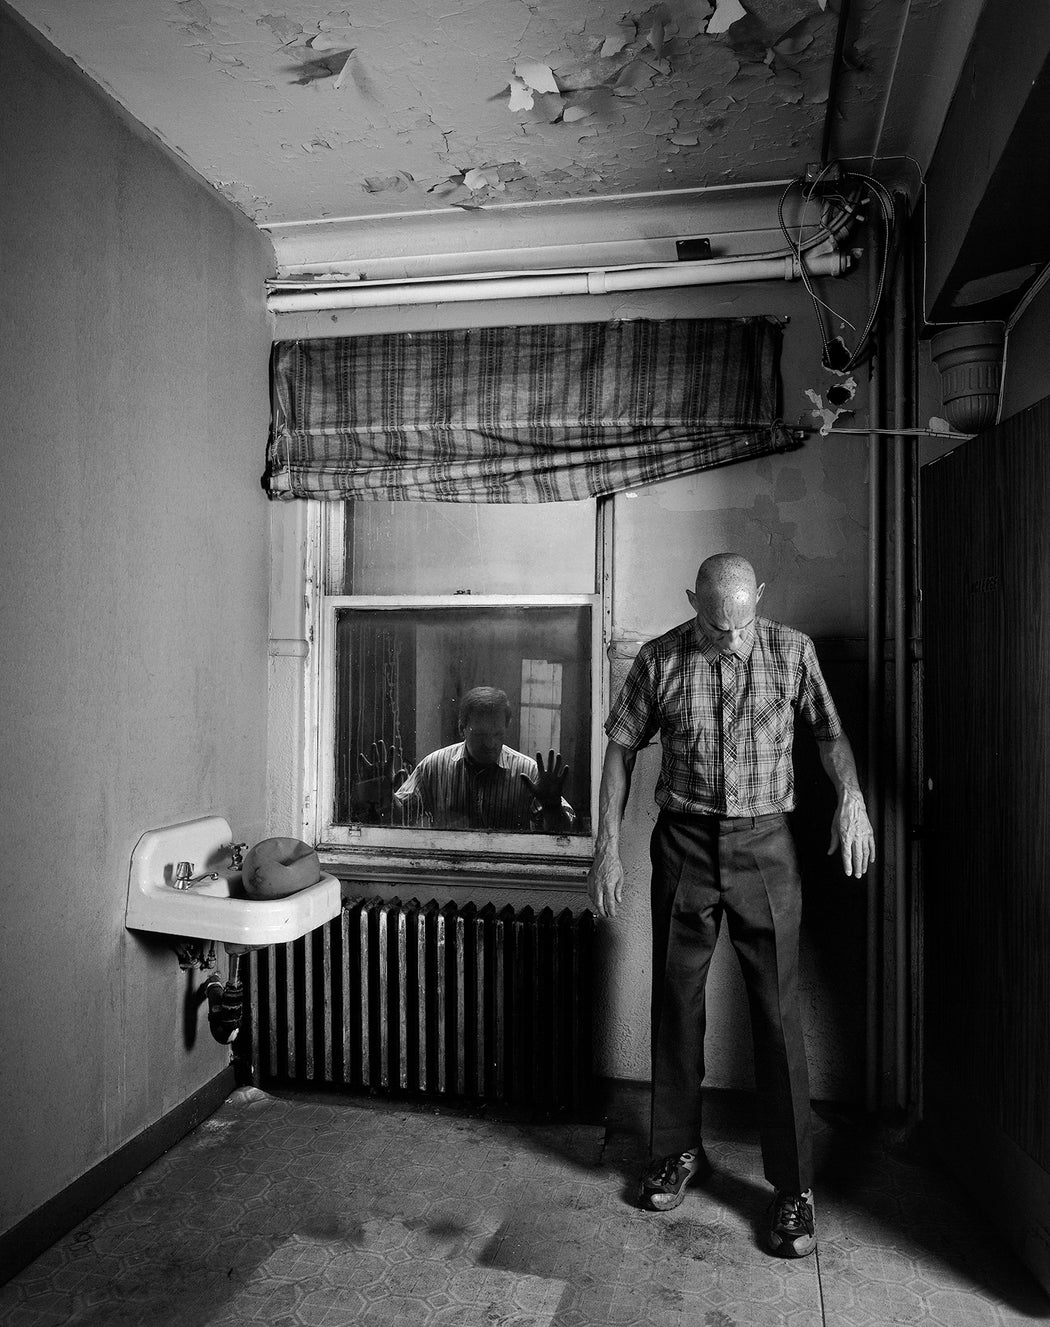 Man in a Room with Witness